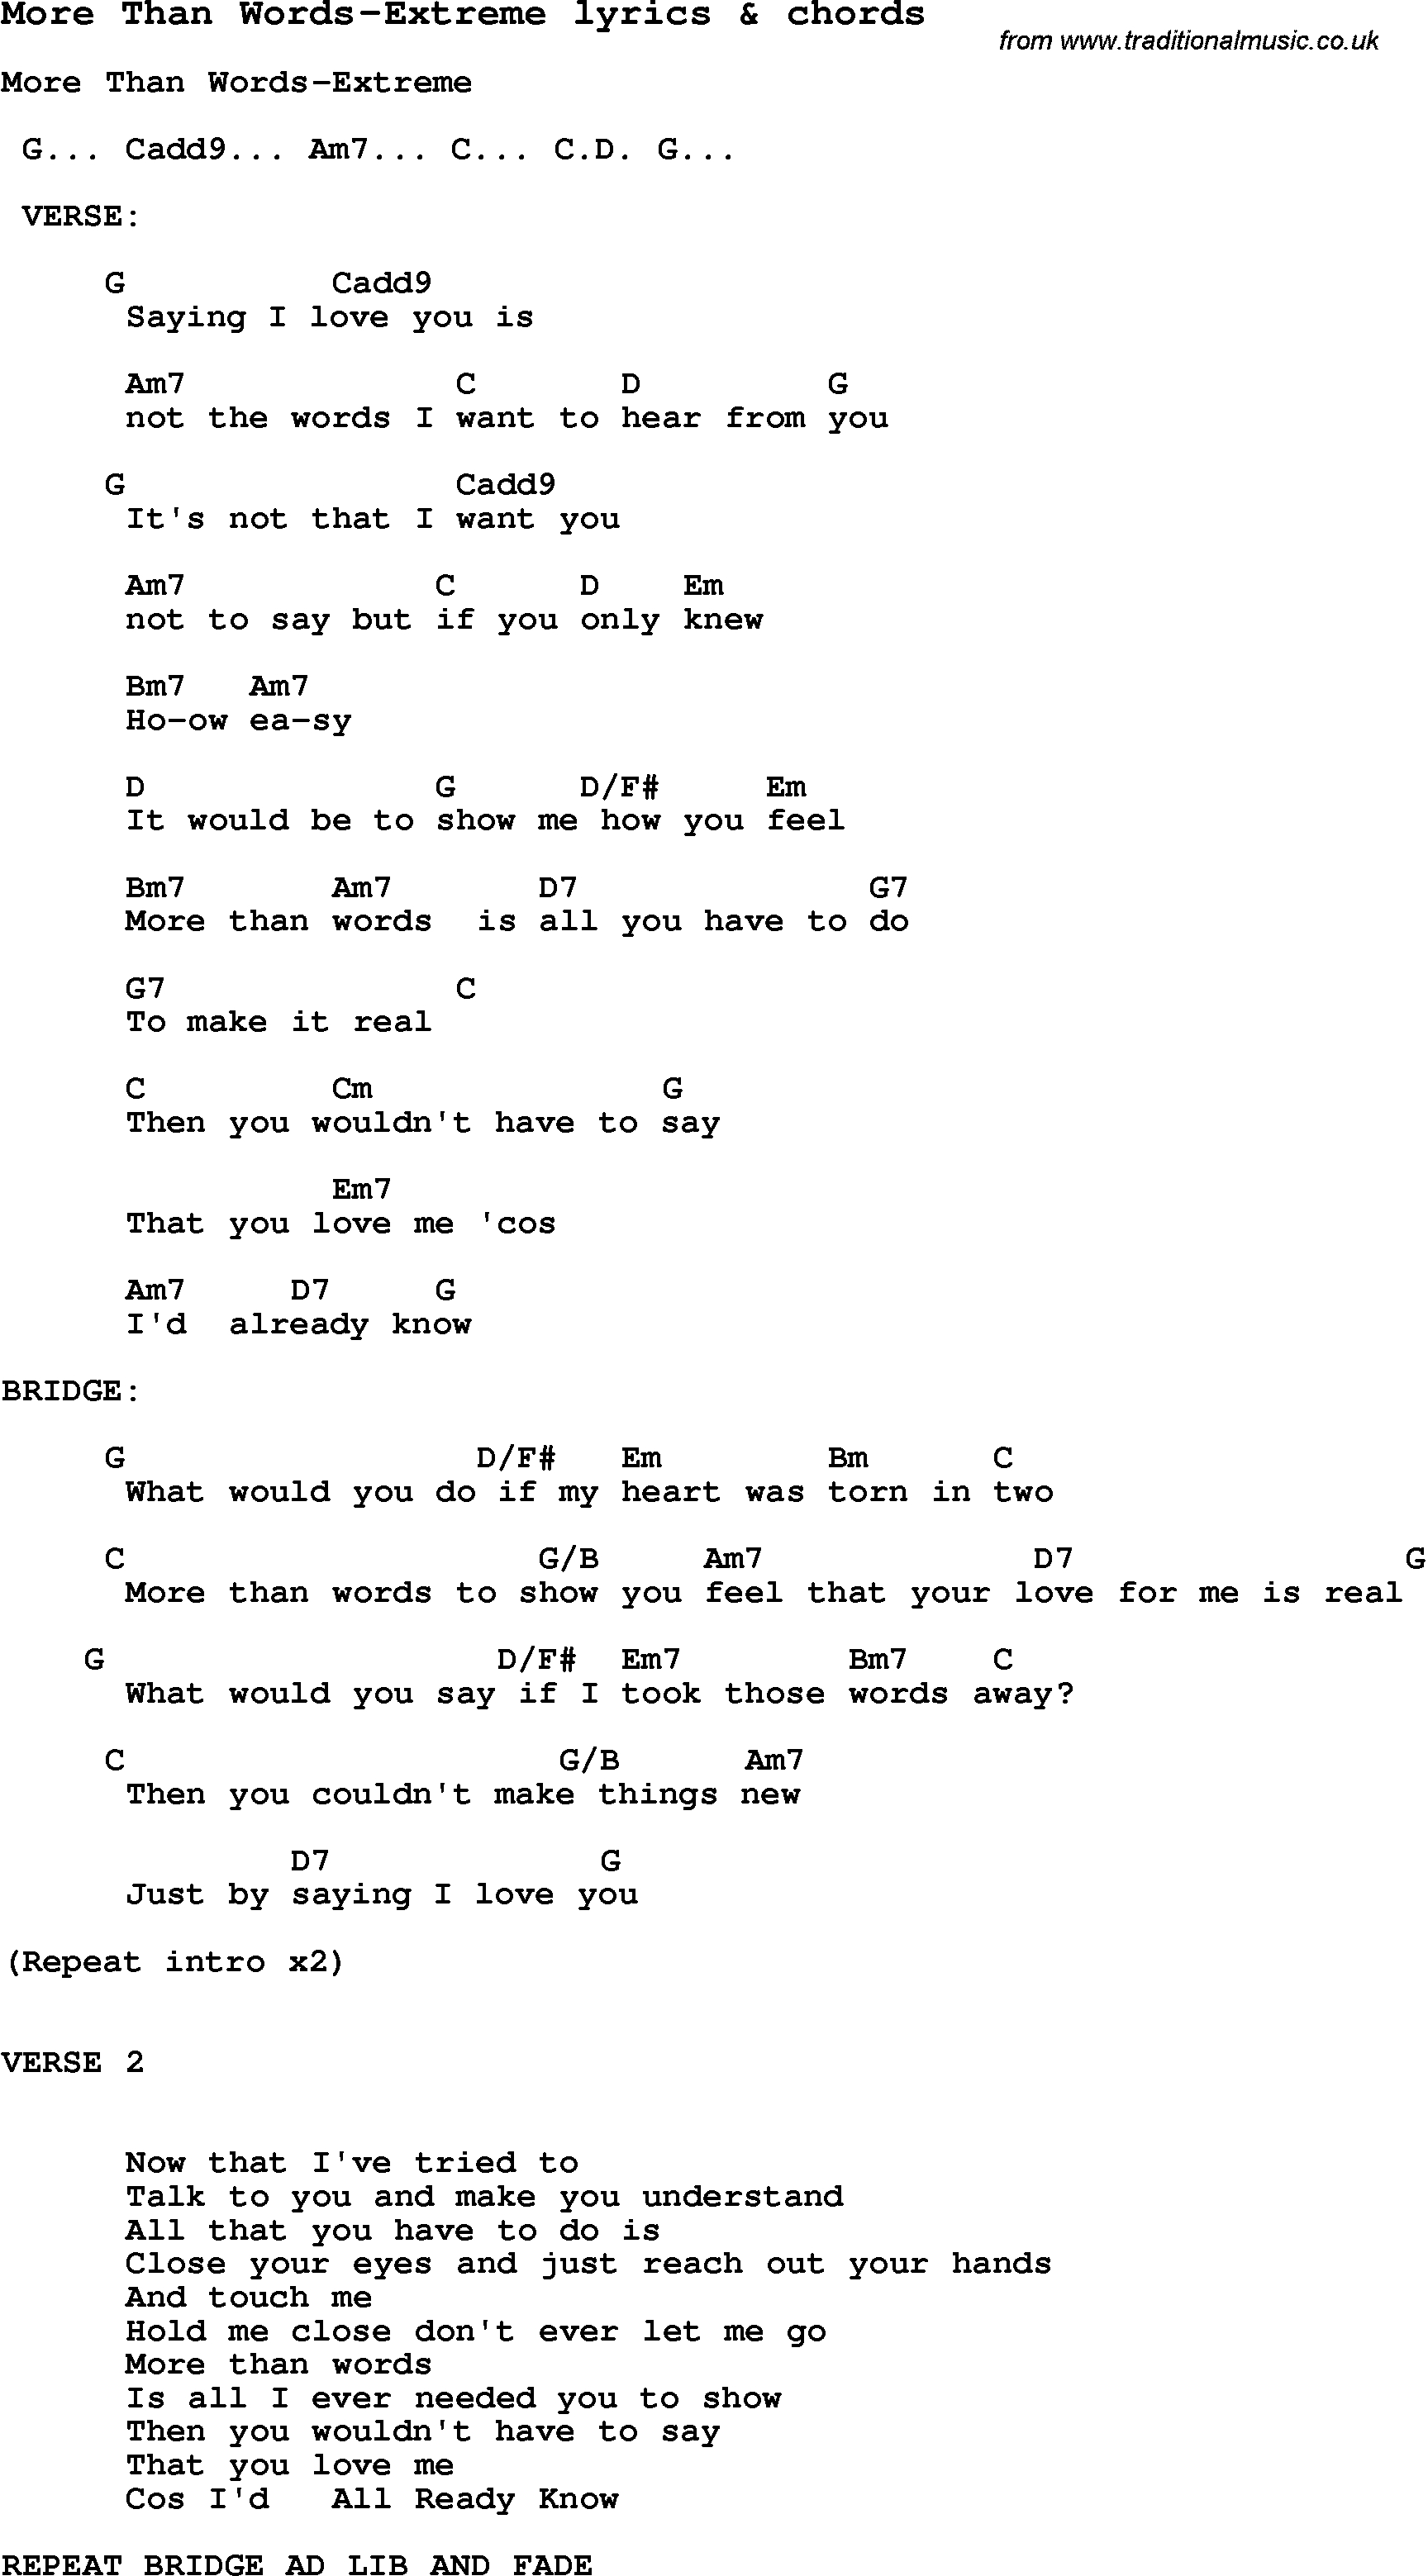 More Than Words Chords Love Song Lyrics Formore Than Words Extreme With Chords